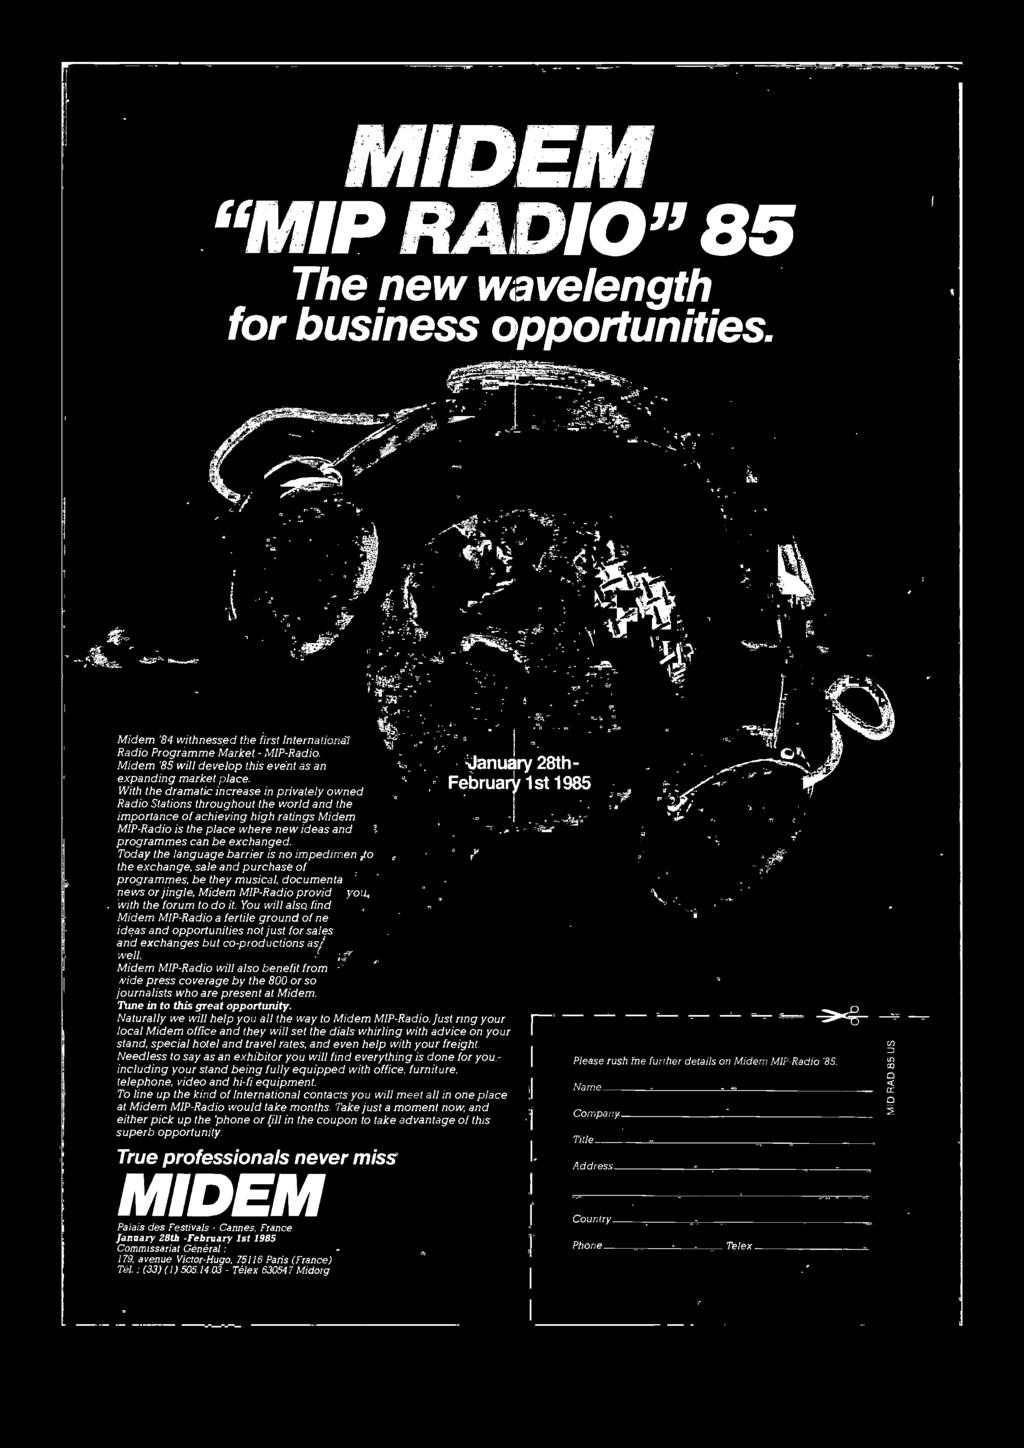 You will also find Midem MIP-Radio a fertile ground of ne ideas and opportunities not just for sales and exchanges but co -productions as well.